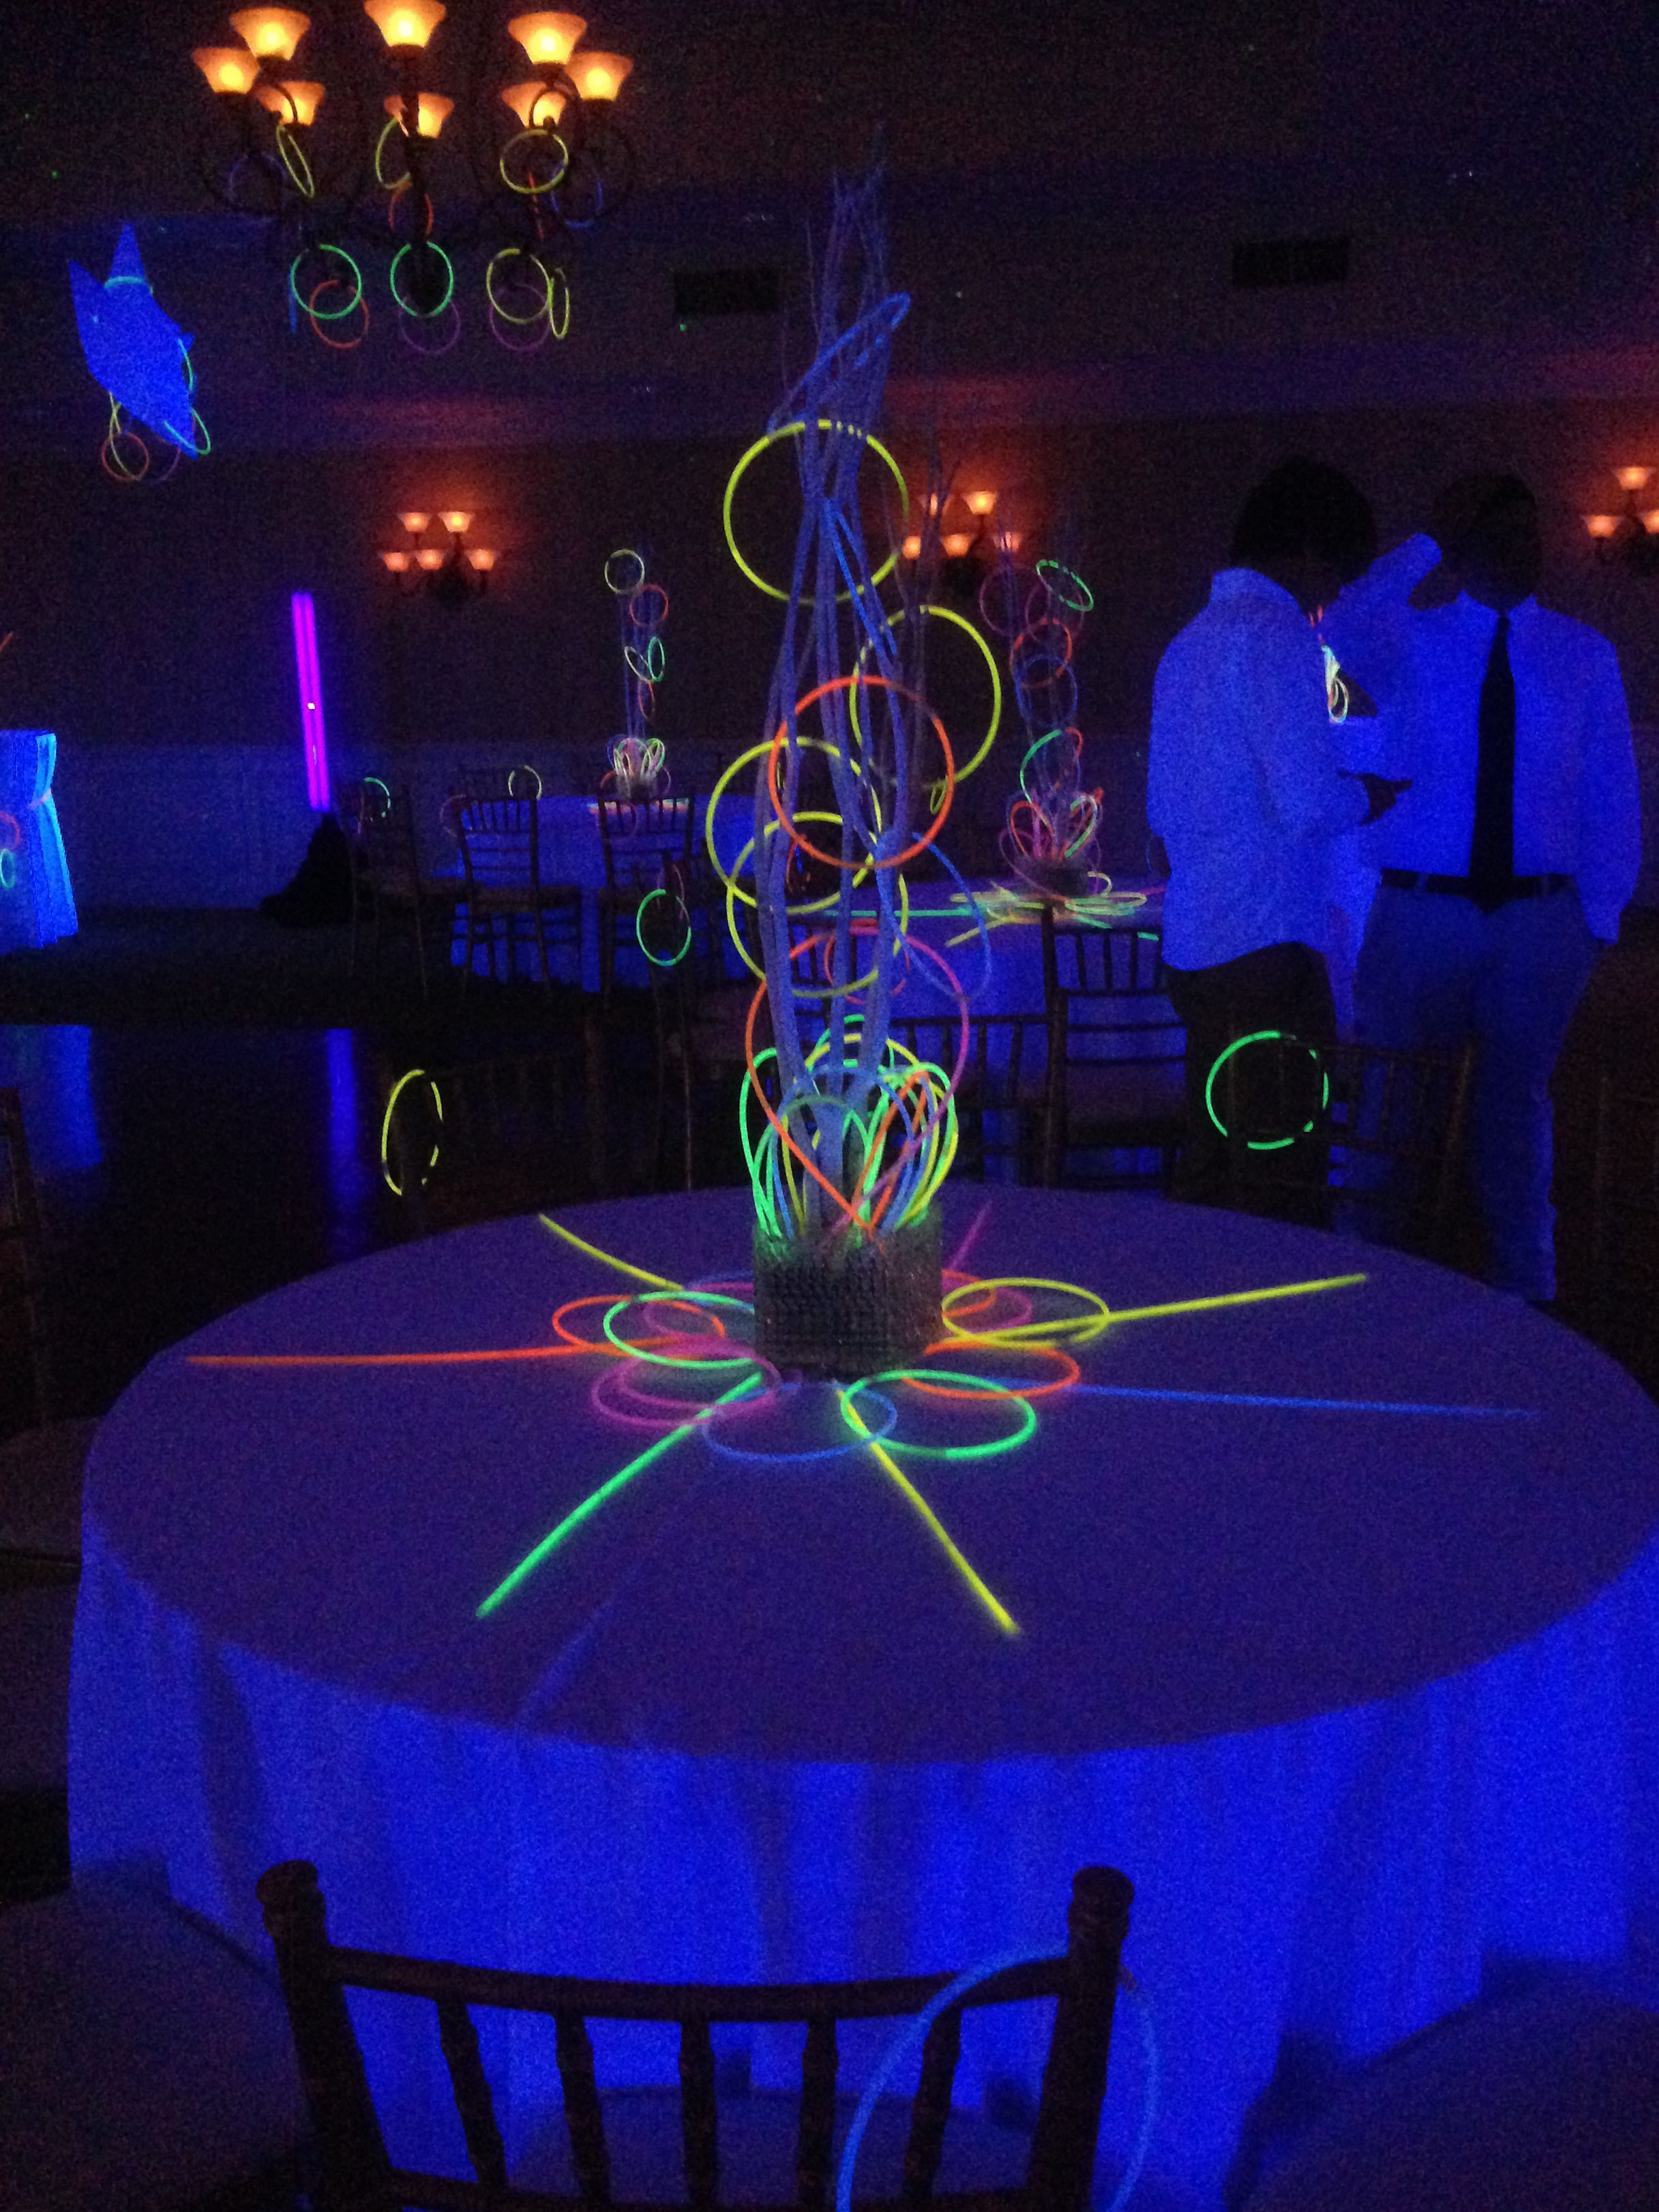 Great Glowstick Centerpiece For A Glow Party